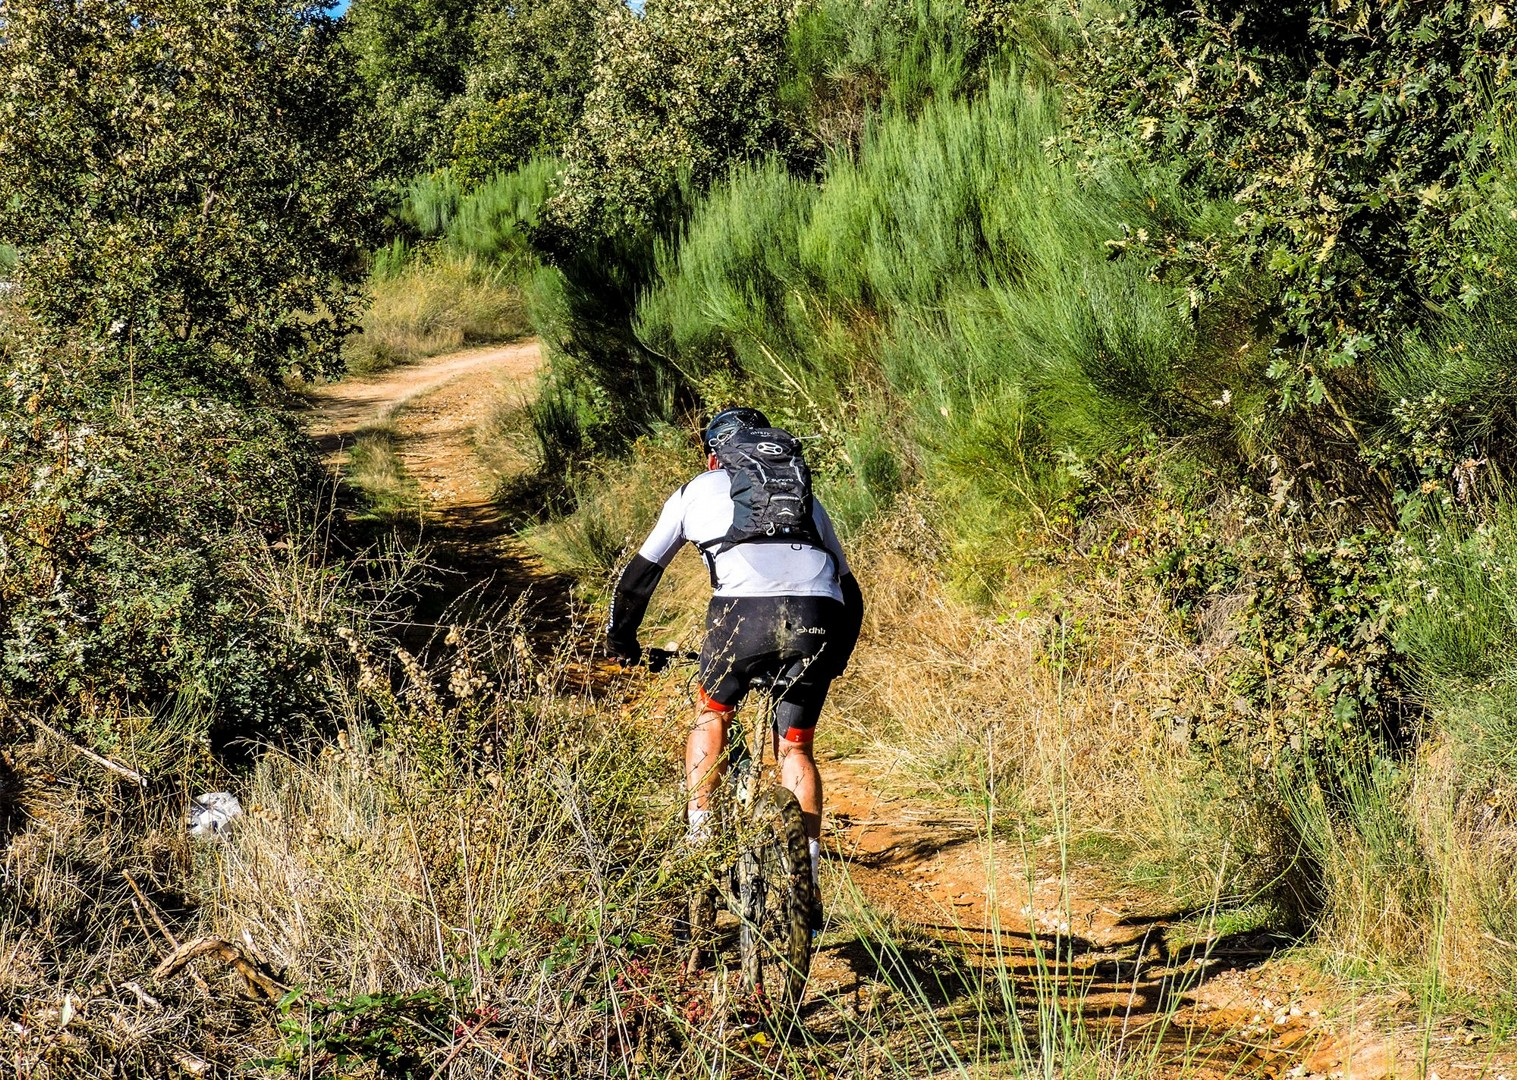 portugal-mountain-bike-roman-trails-tour-cycling-holidays-saddle-skedaddle.jpg - Portugal - Roman Trails - Guided Mountain Bike Holiday - Mountain Biking